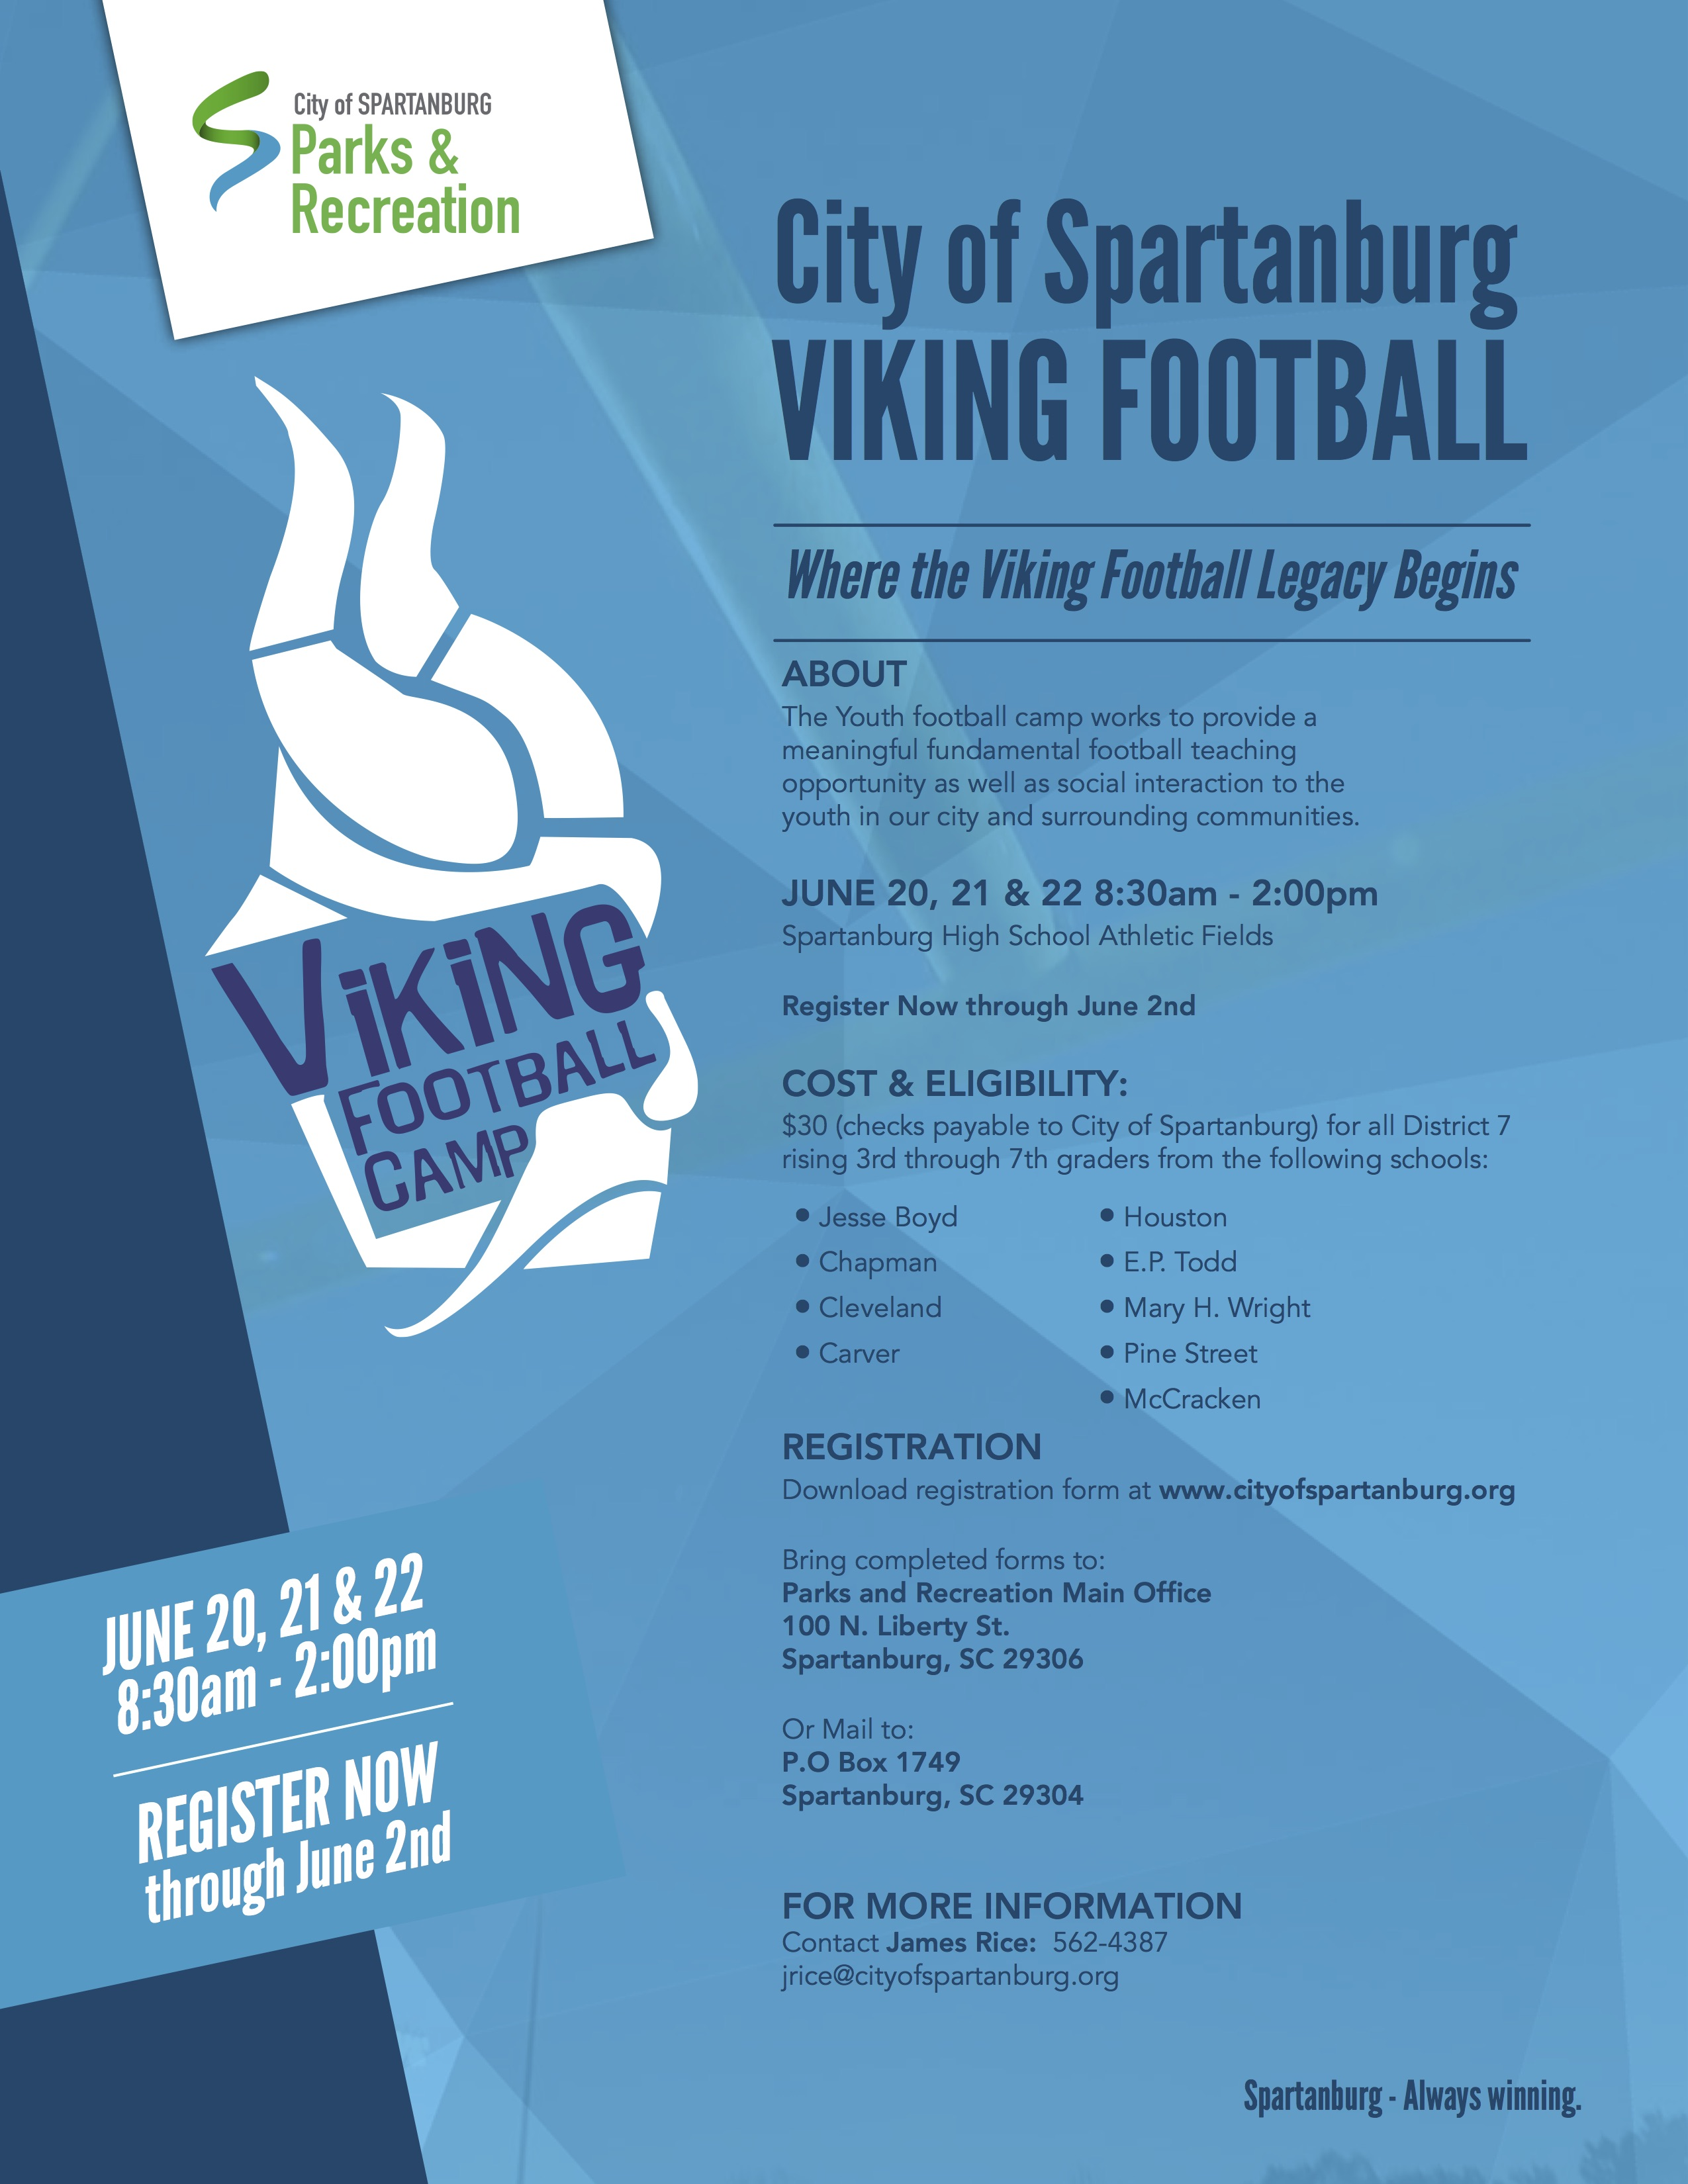 Viking Youth Football Camp